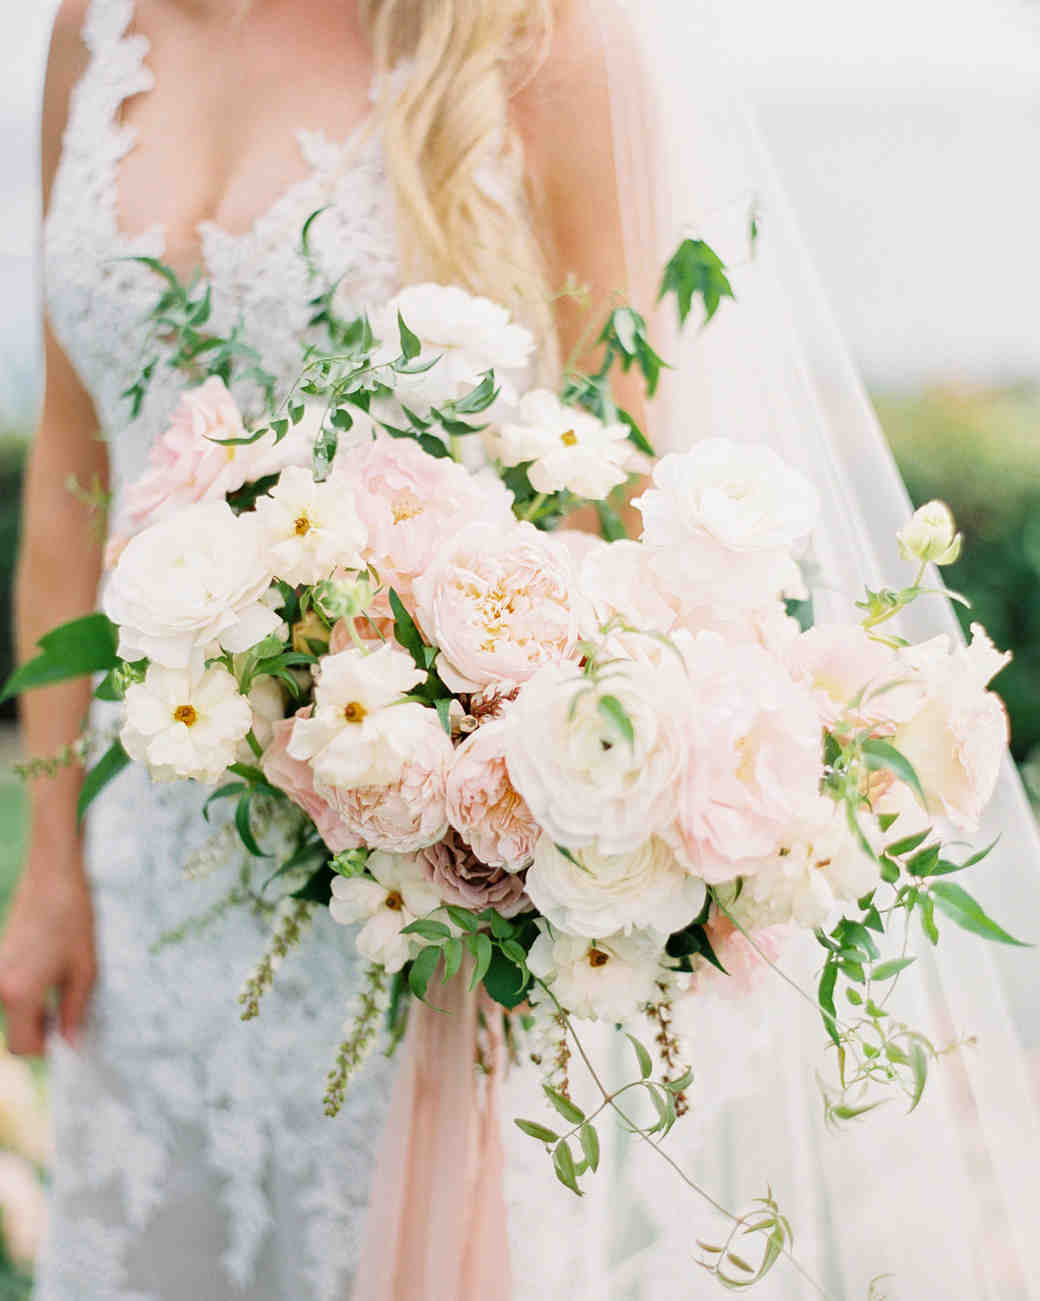 mykaela and brendon wedding brides bouquet of pale pink and white roses